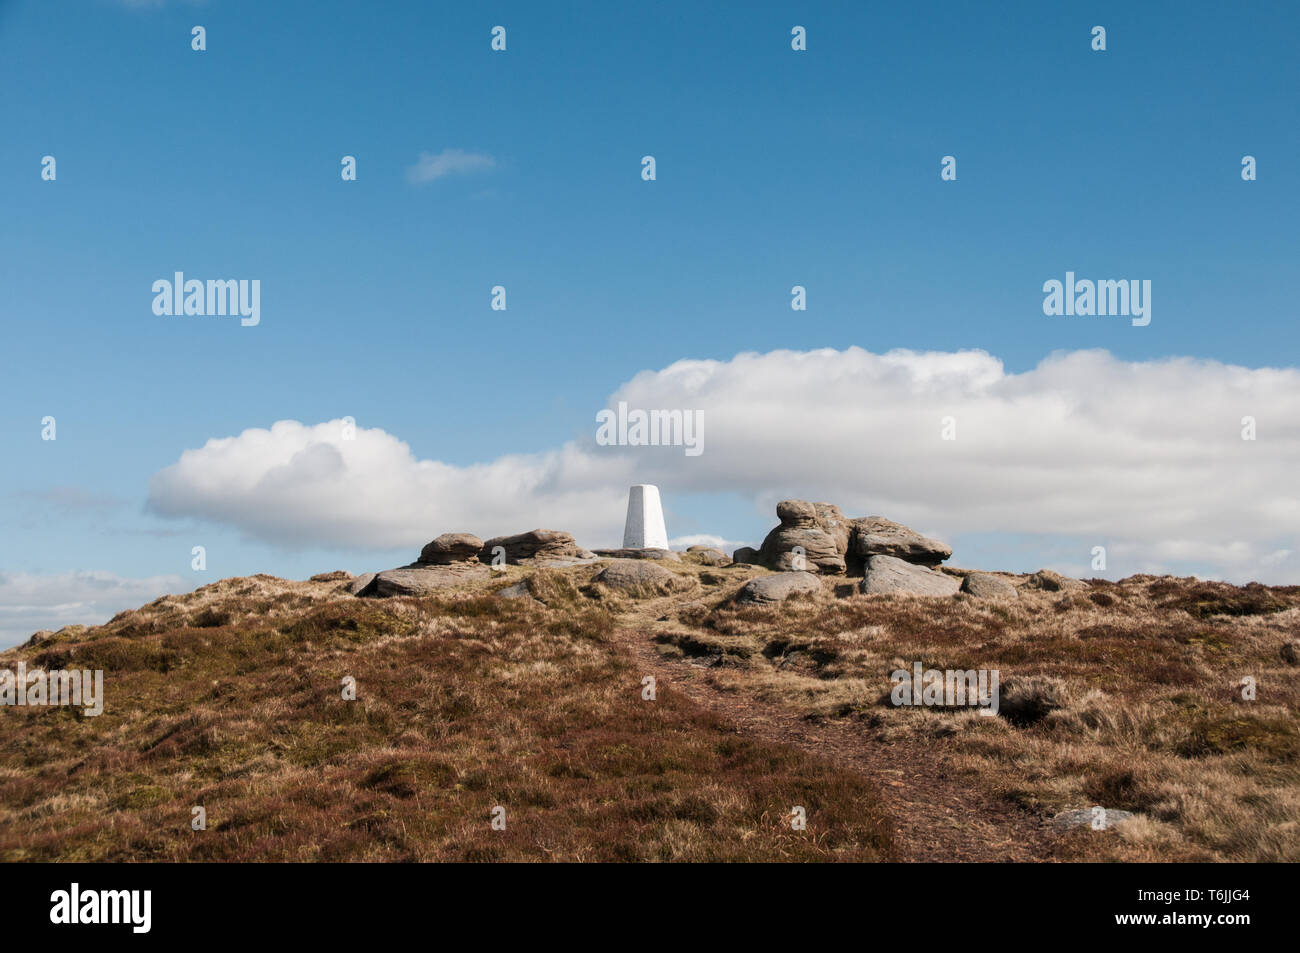 One of a series of images captured on a 7.5 mile walk from the village of Wycoller onto the slopes of Boulsworth Hill and the peak of Lad Law at 517m. - Stock Image